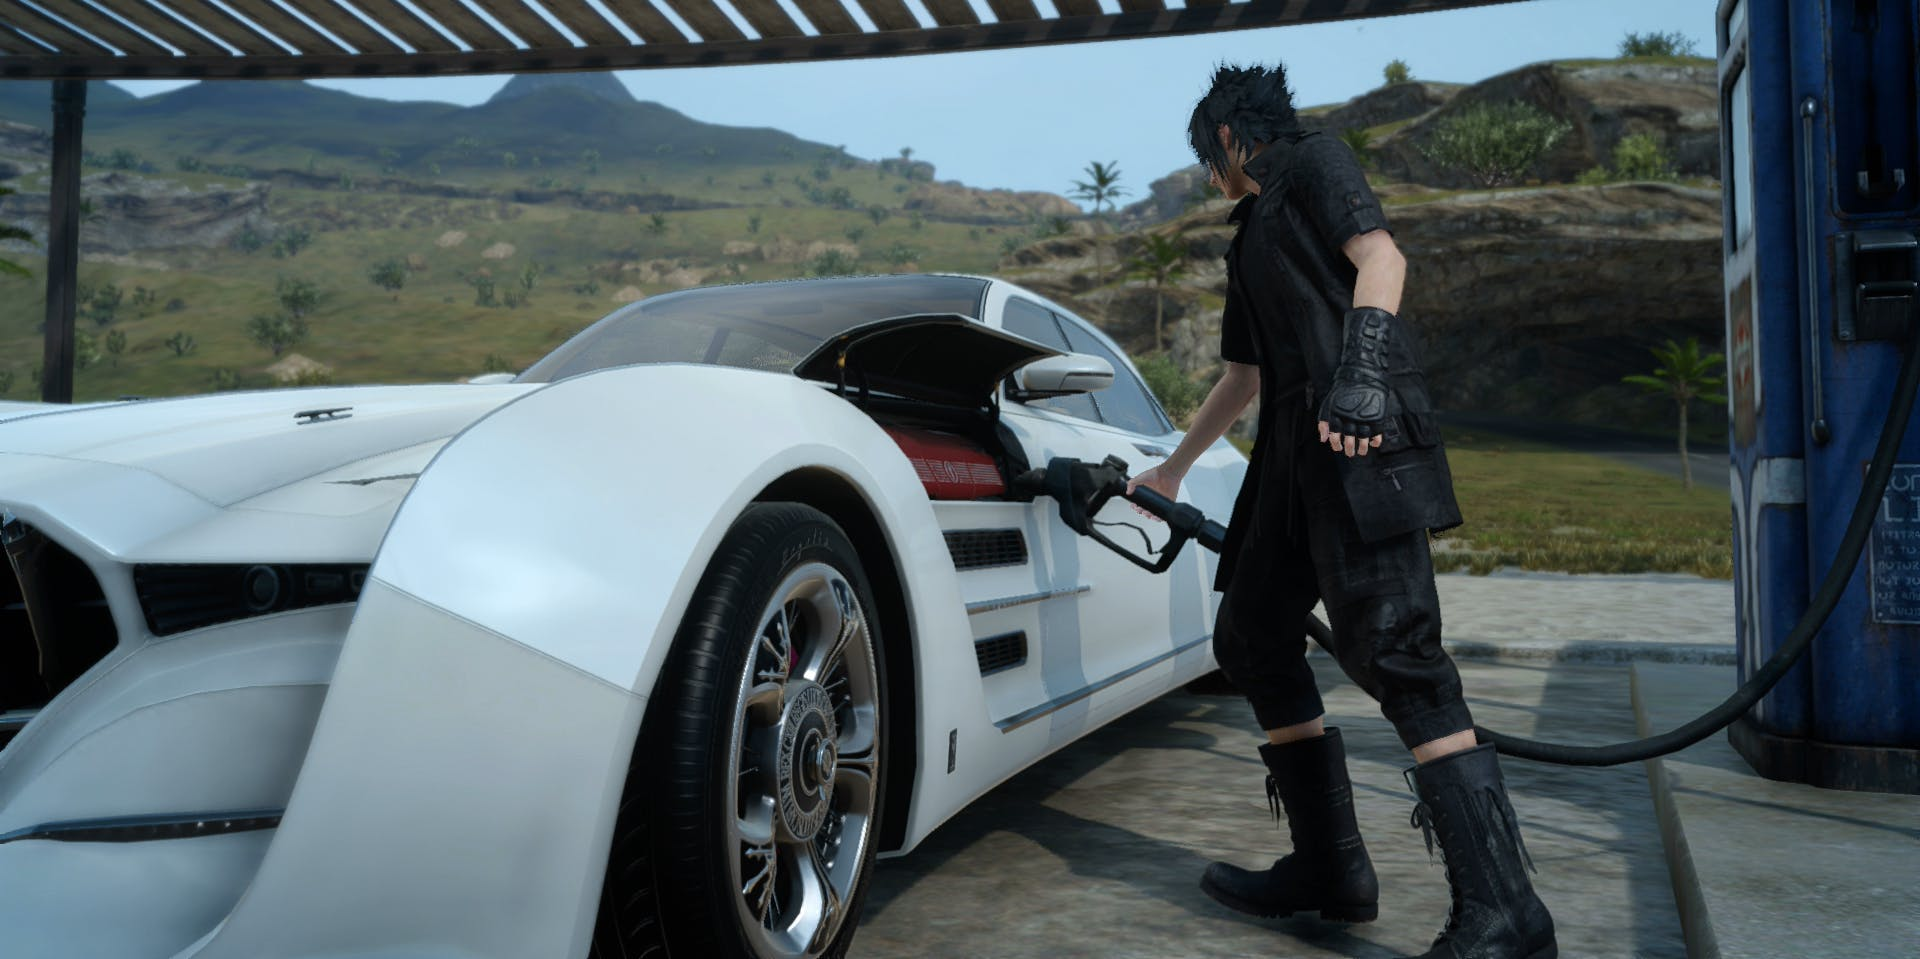 Final Fantasy XV patch update could introduce god mode